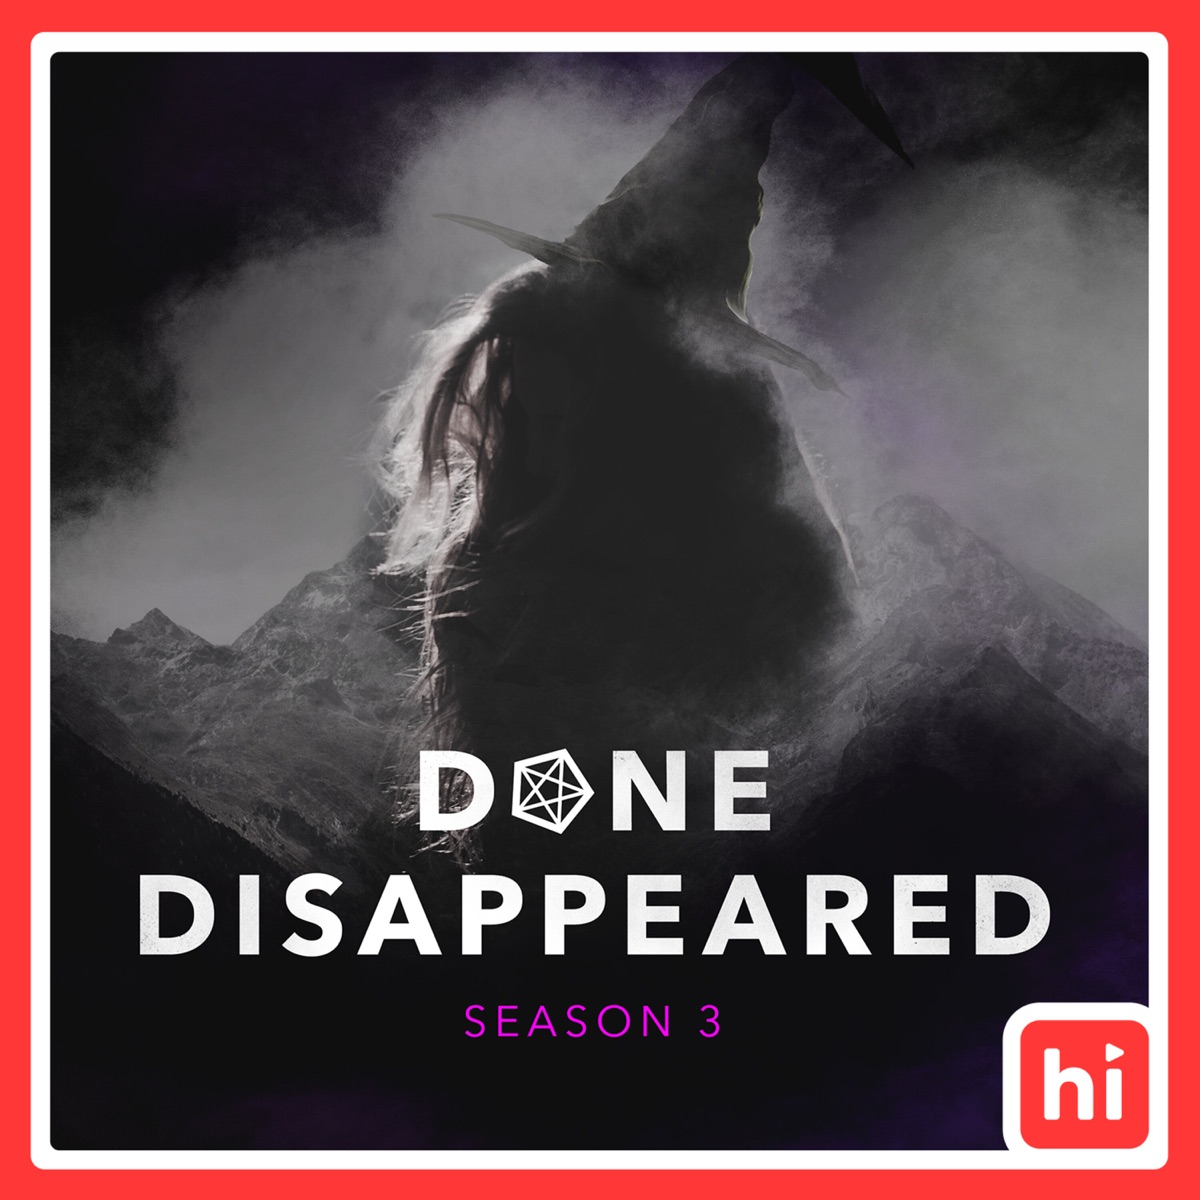 DONE DISAPPEARED